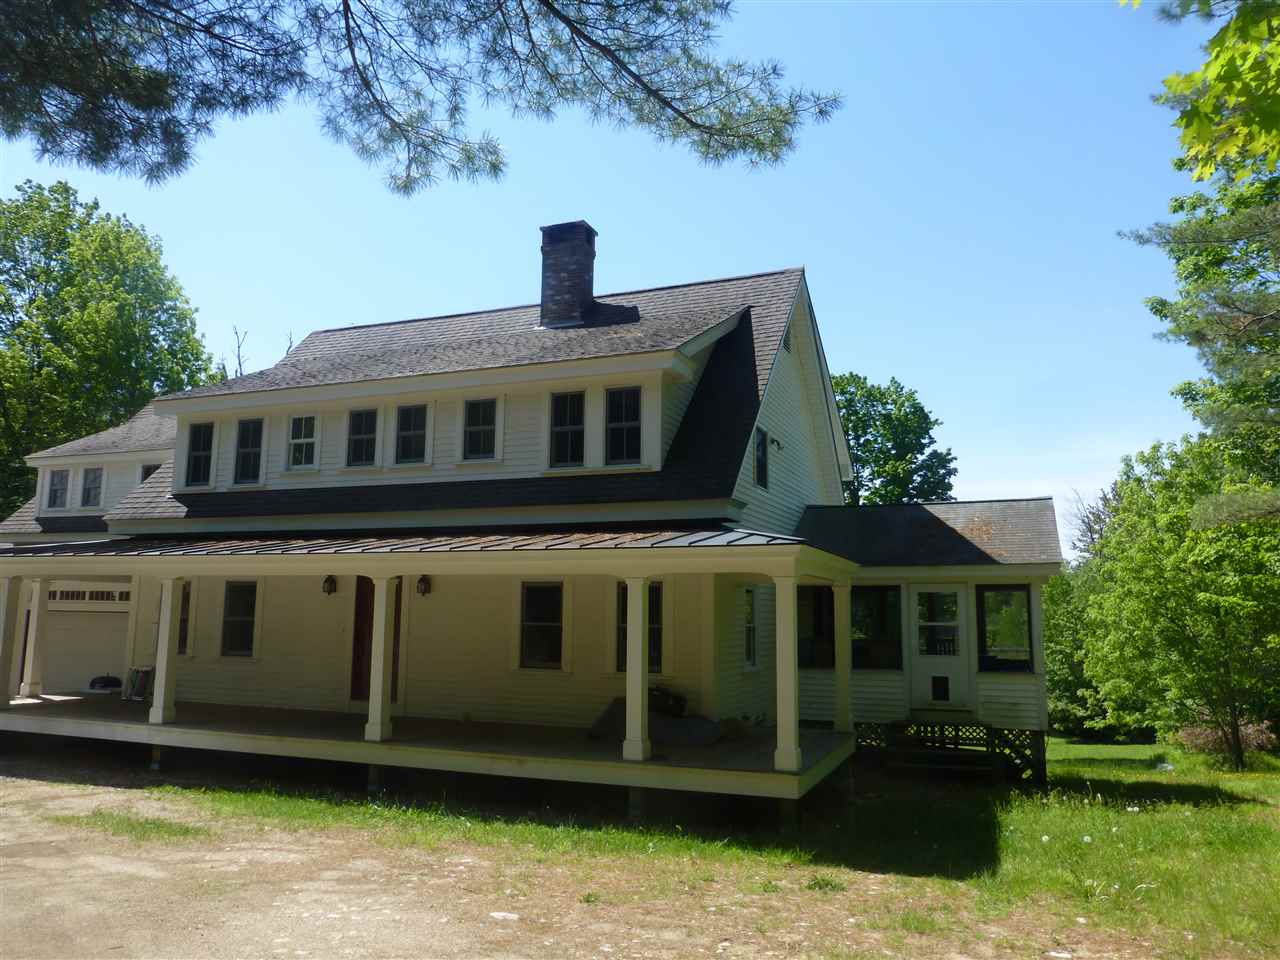 Photo of 431 Chase Road Sandwich NH 03259